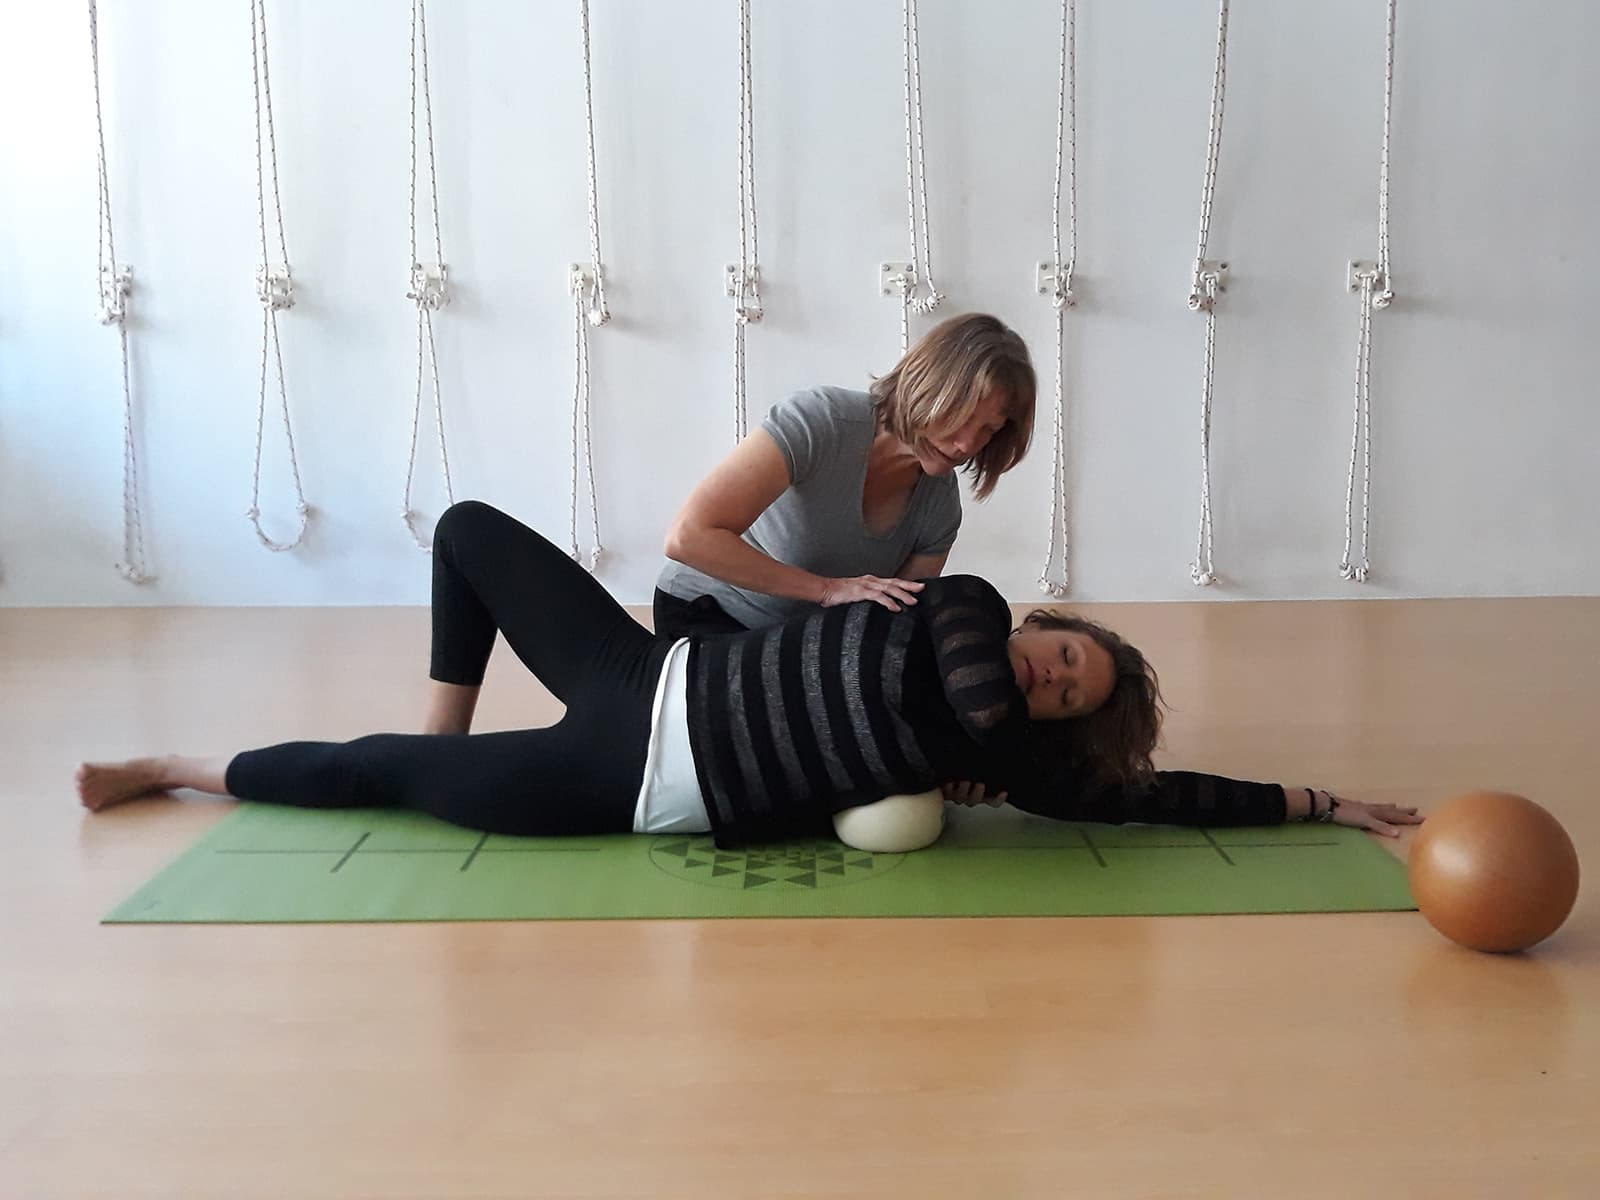 Private Sessions with Norma Goodrick of Karmuka Yoga in U.S.A. - Karmuka Yoga